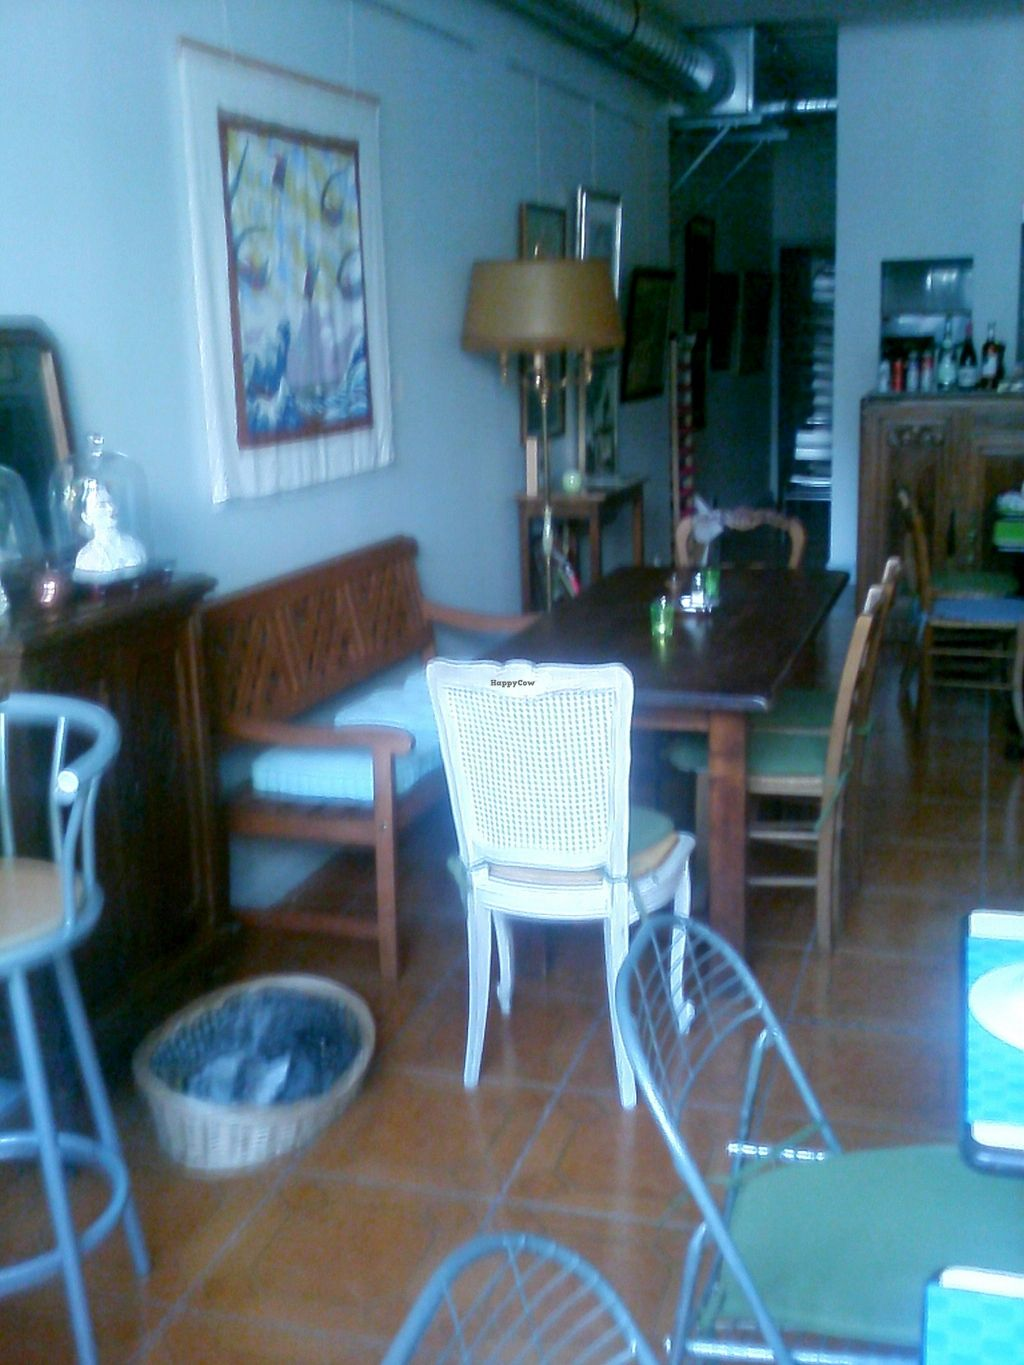 """Photo of Frida's  by <a href=""""/members/profile/domitila"""">domitila</a> <br/>view of the main room, with Frida's  bust on the left <br/> June 22, 2017  - <a href='/contact/abuse/image/93098/272211'>Report</a>"""